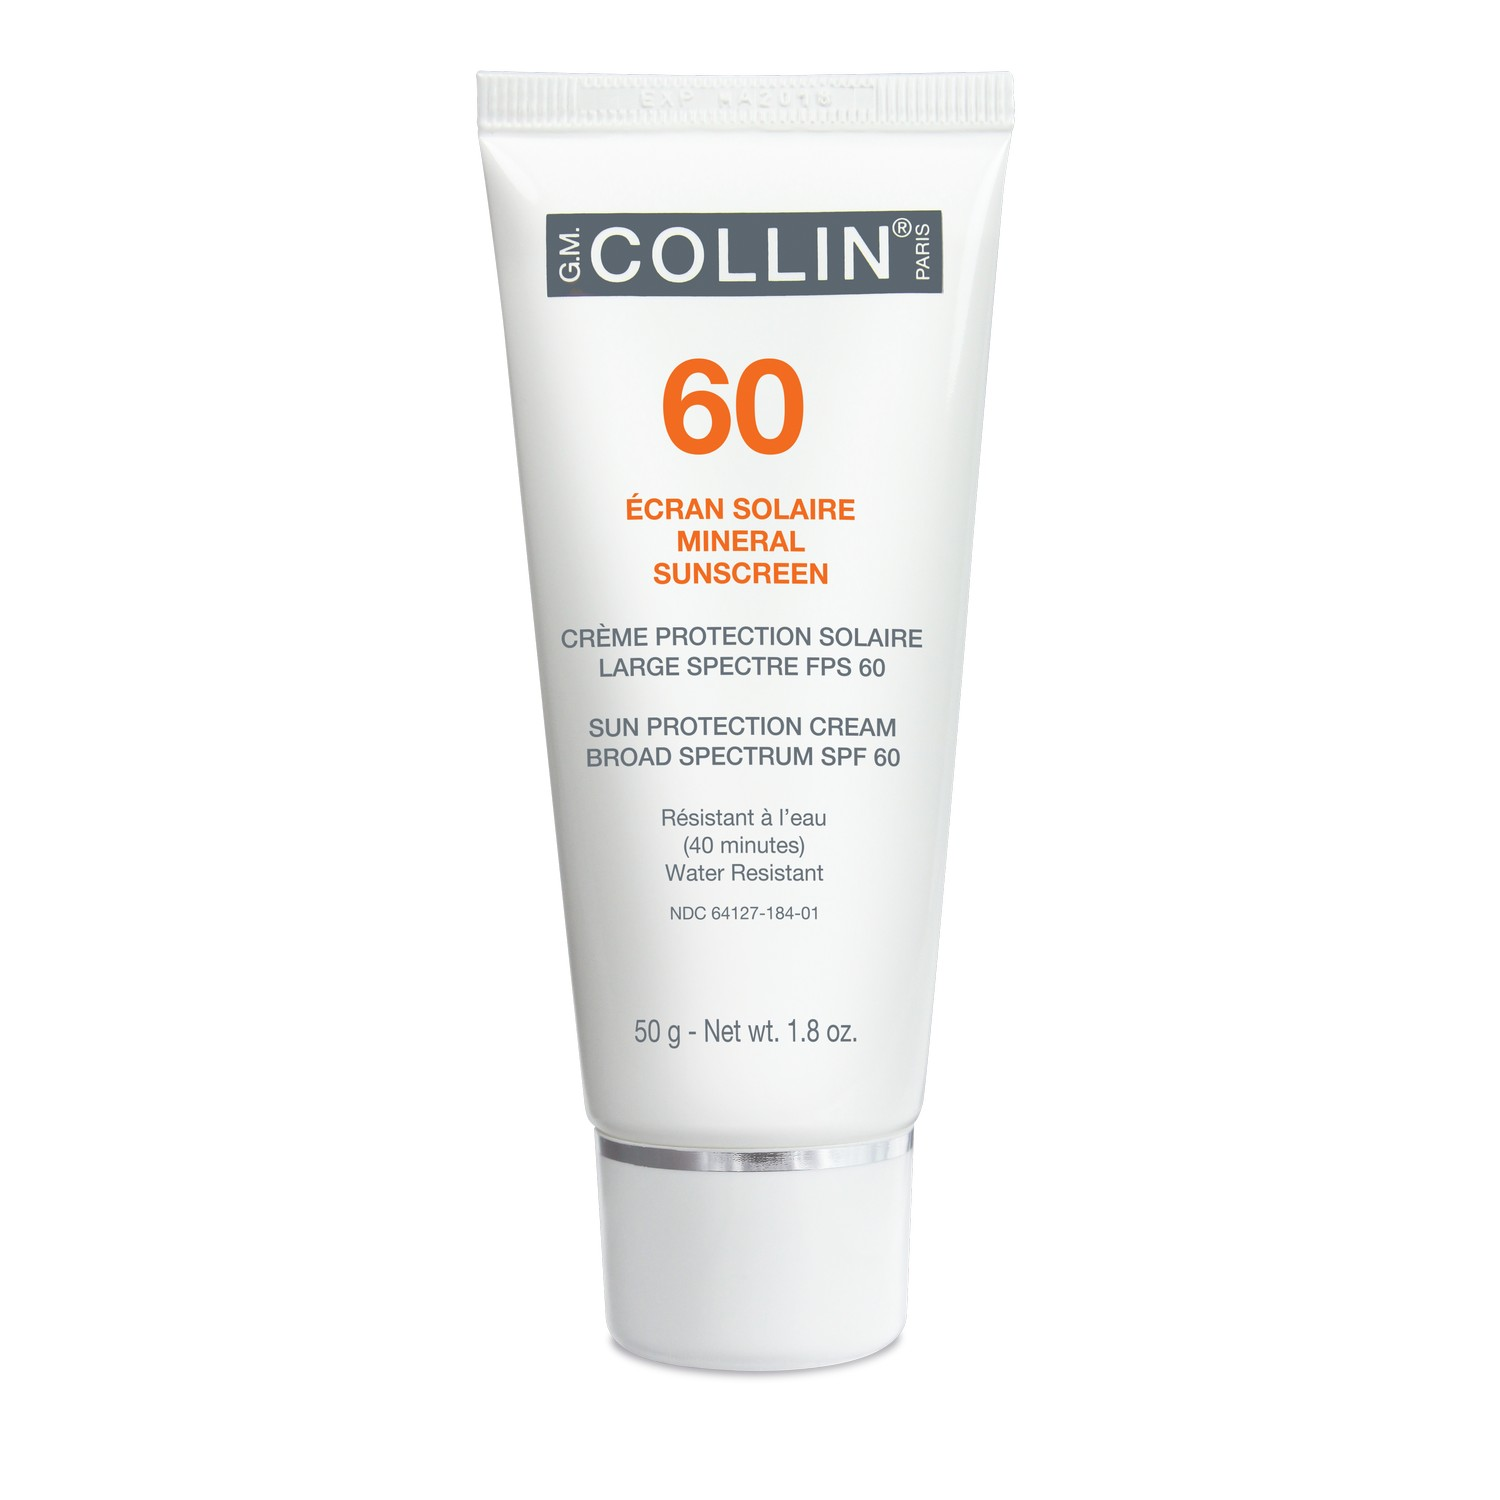 GM Collin Skincare 60 MINERAL SUNSCREEN (50 g / 1.8 oz)